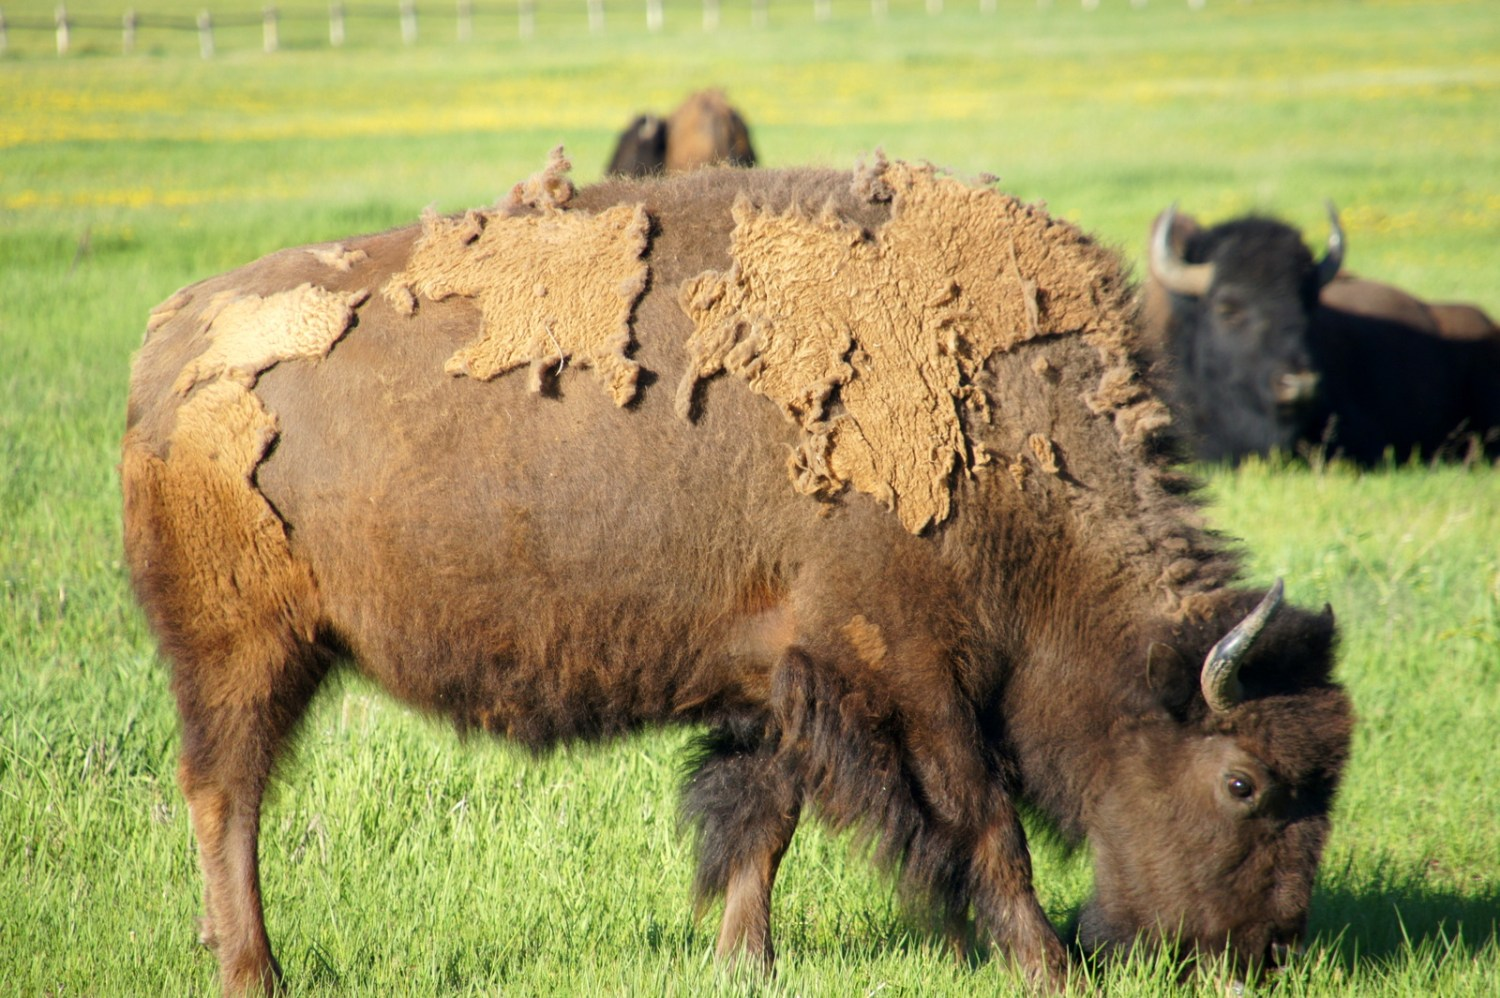 A big ol' bison munching away in the fields.